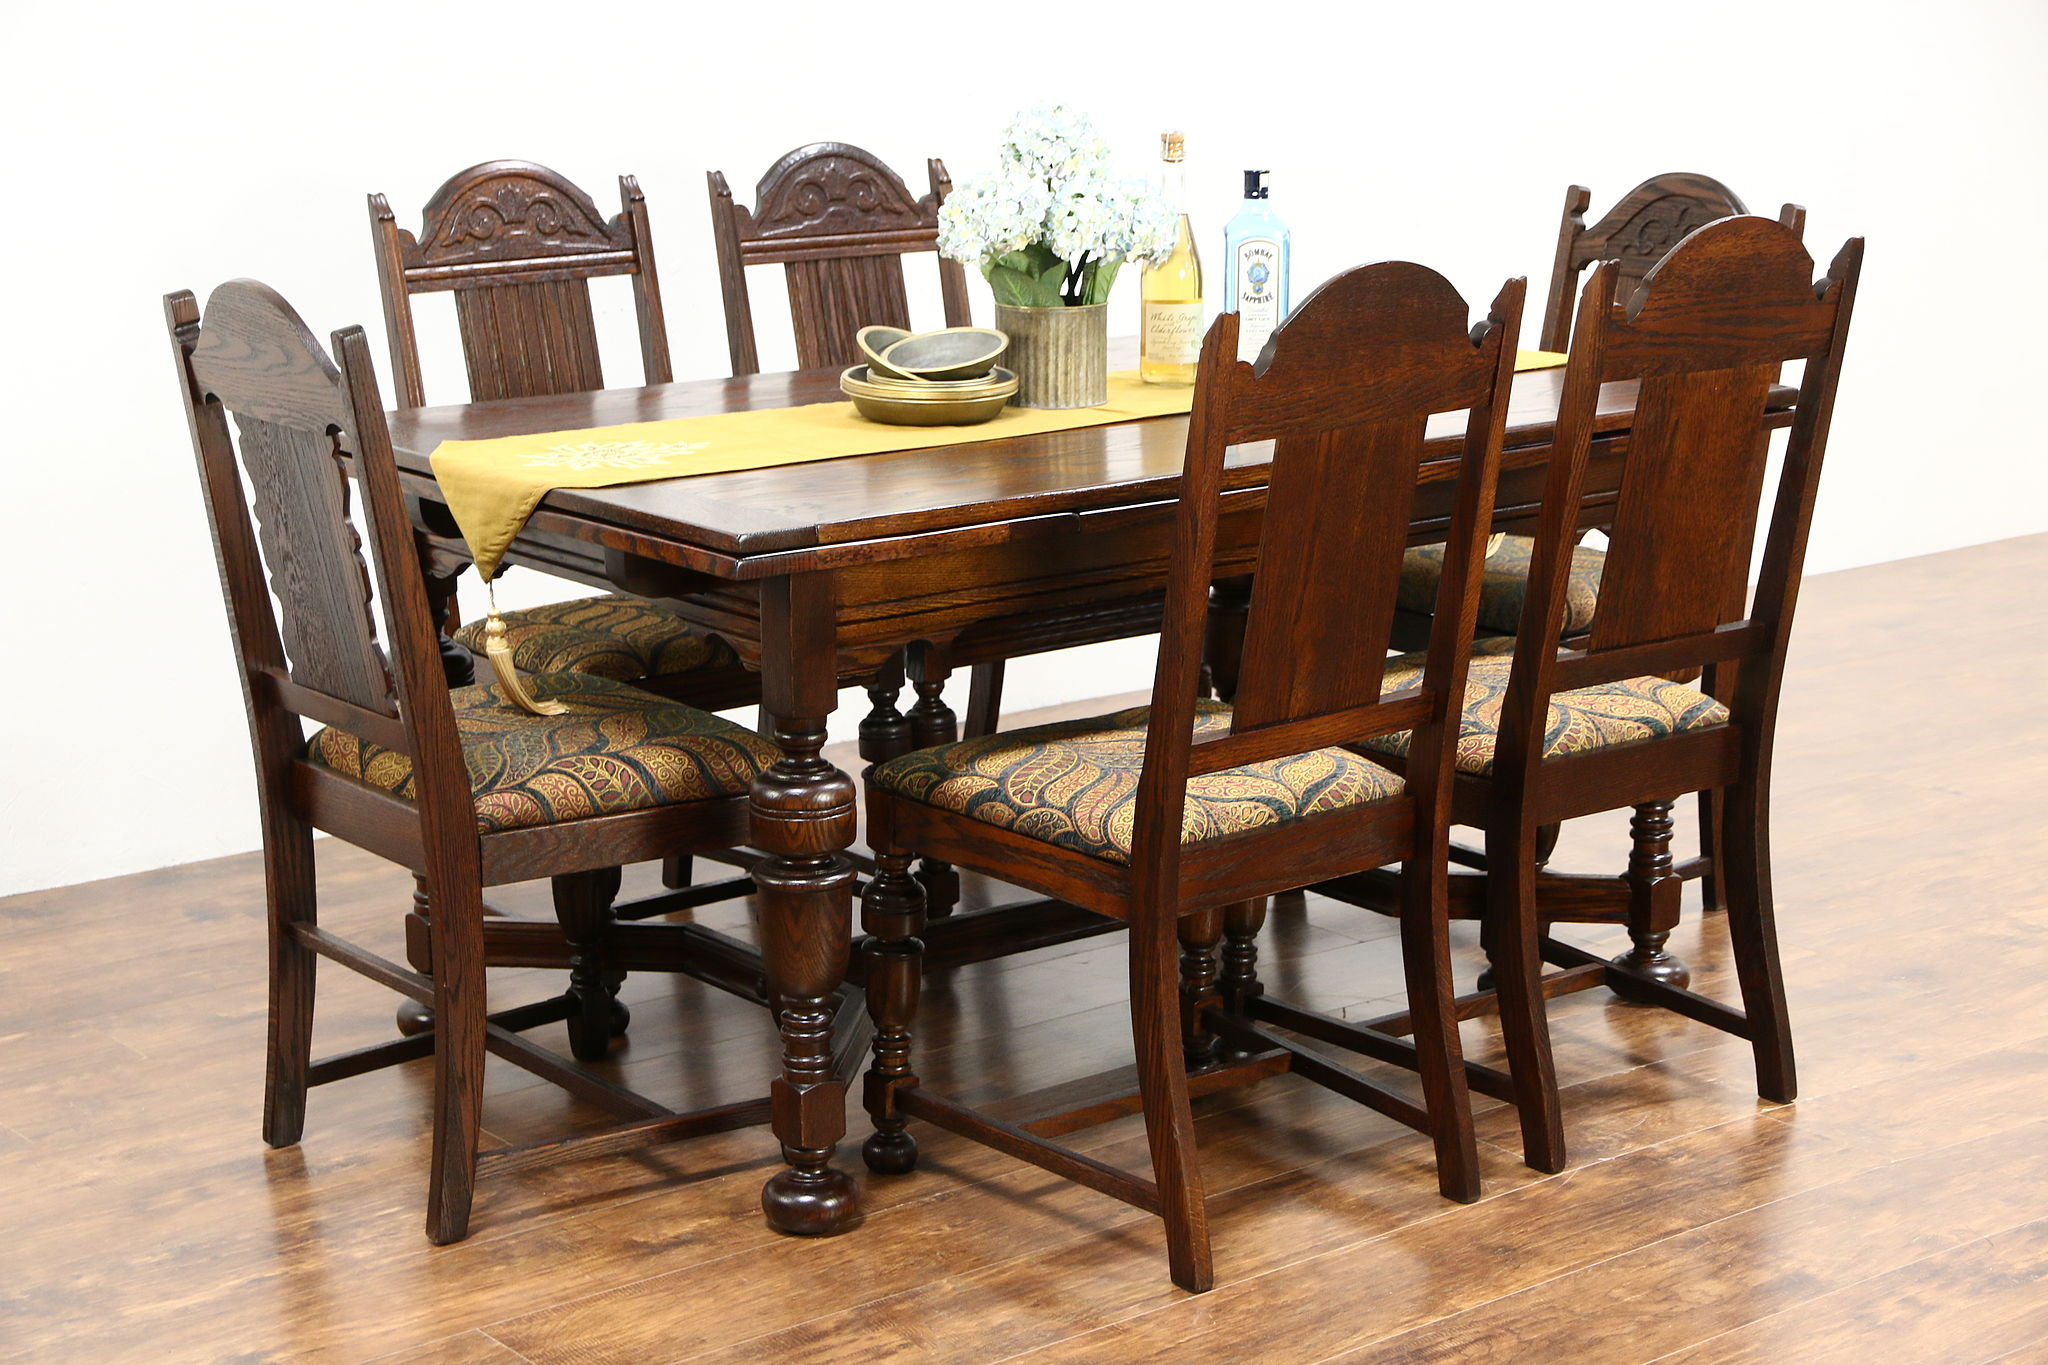 English Tudor Antique 1920 Oak Dining Set Table 2 Leaves 6 Chairs Photo